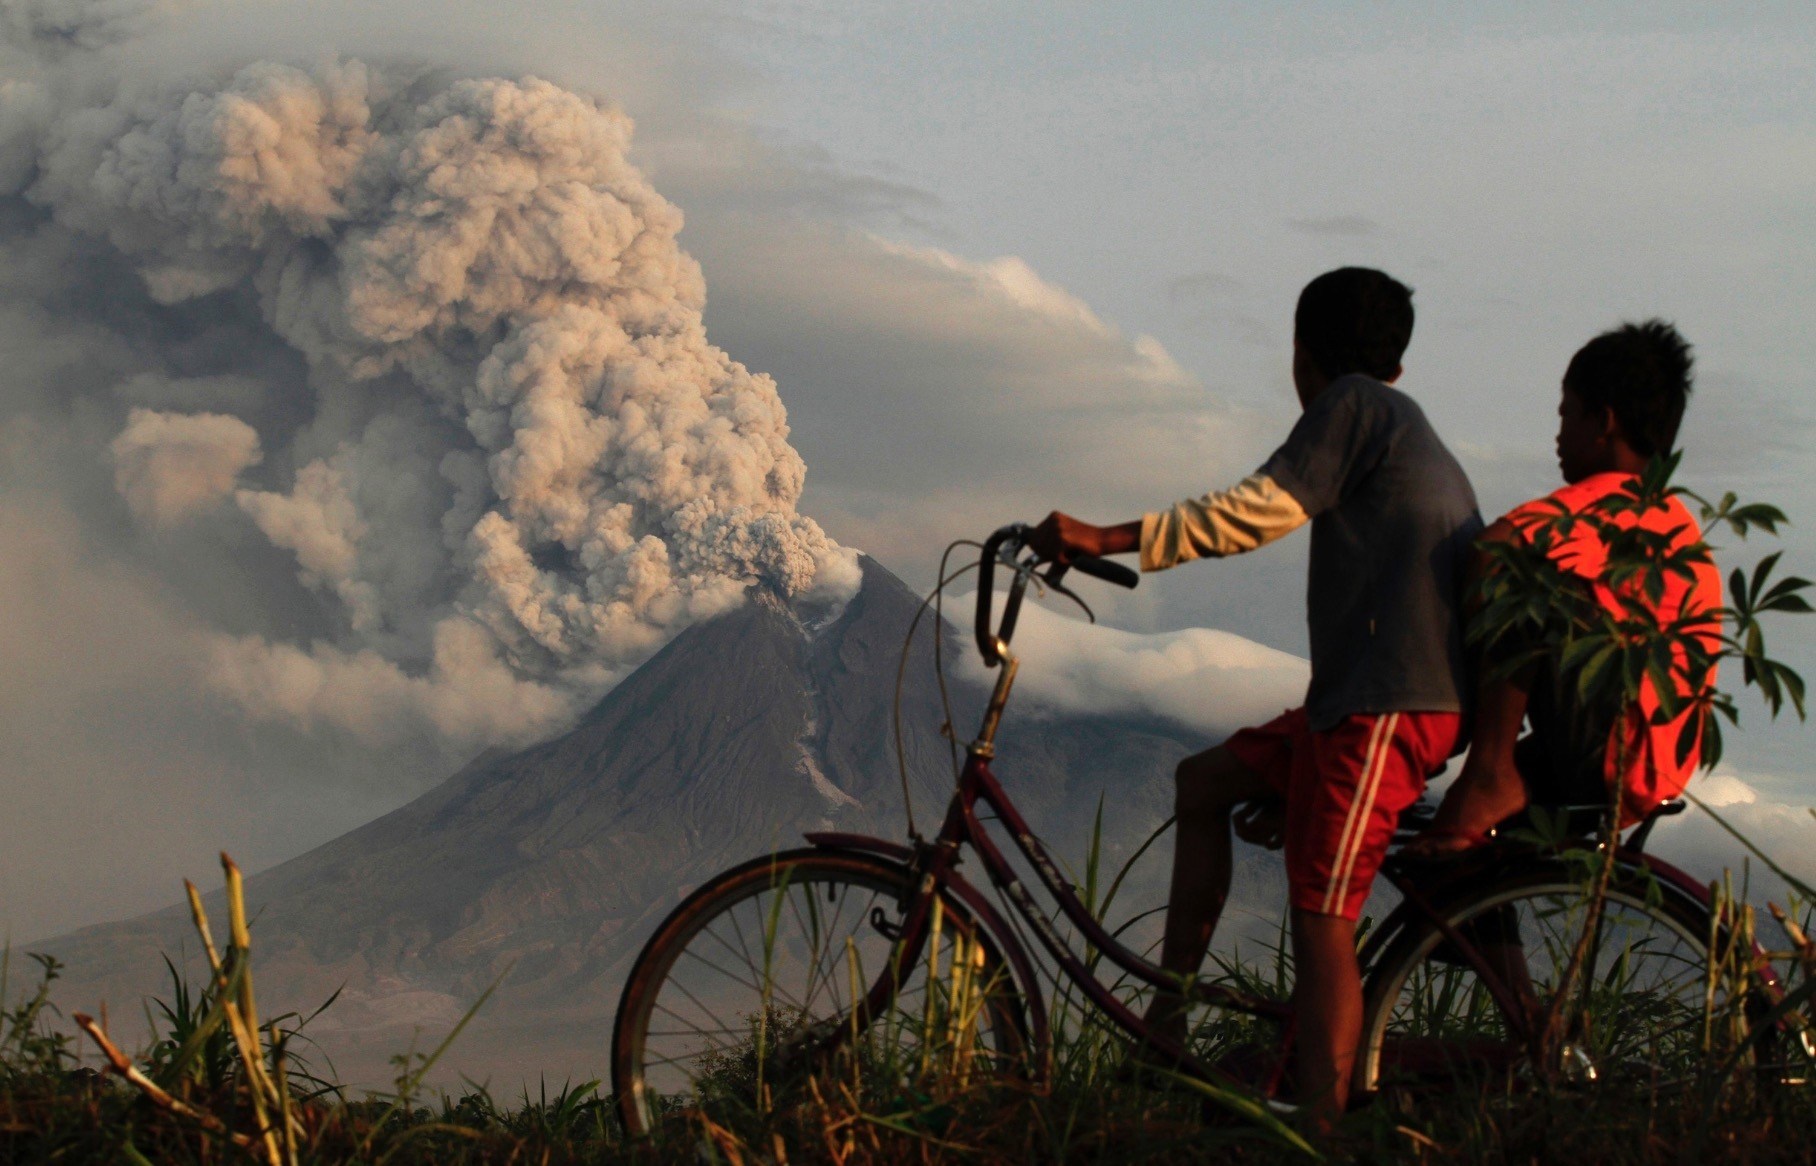 Two local boys look in awe as Mount Merapi erupts in Manisrenggo, Indonesia on Nov. 10, 2010.